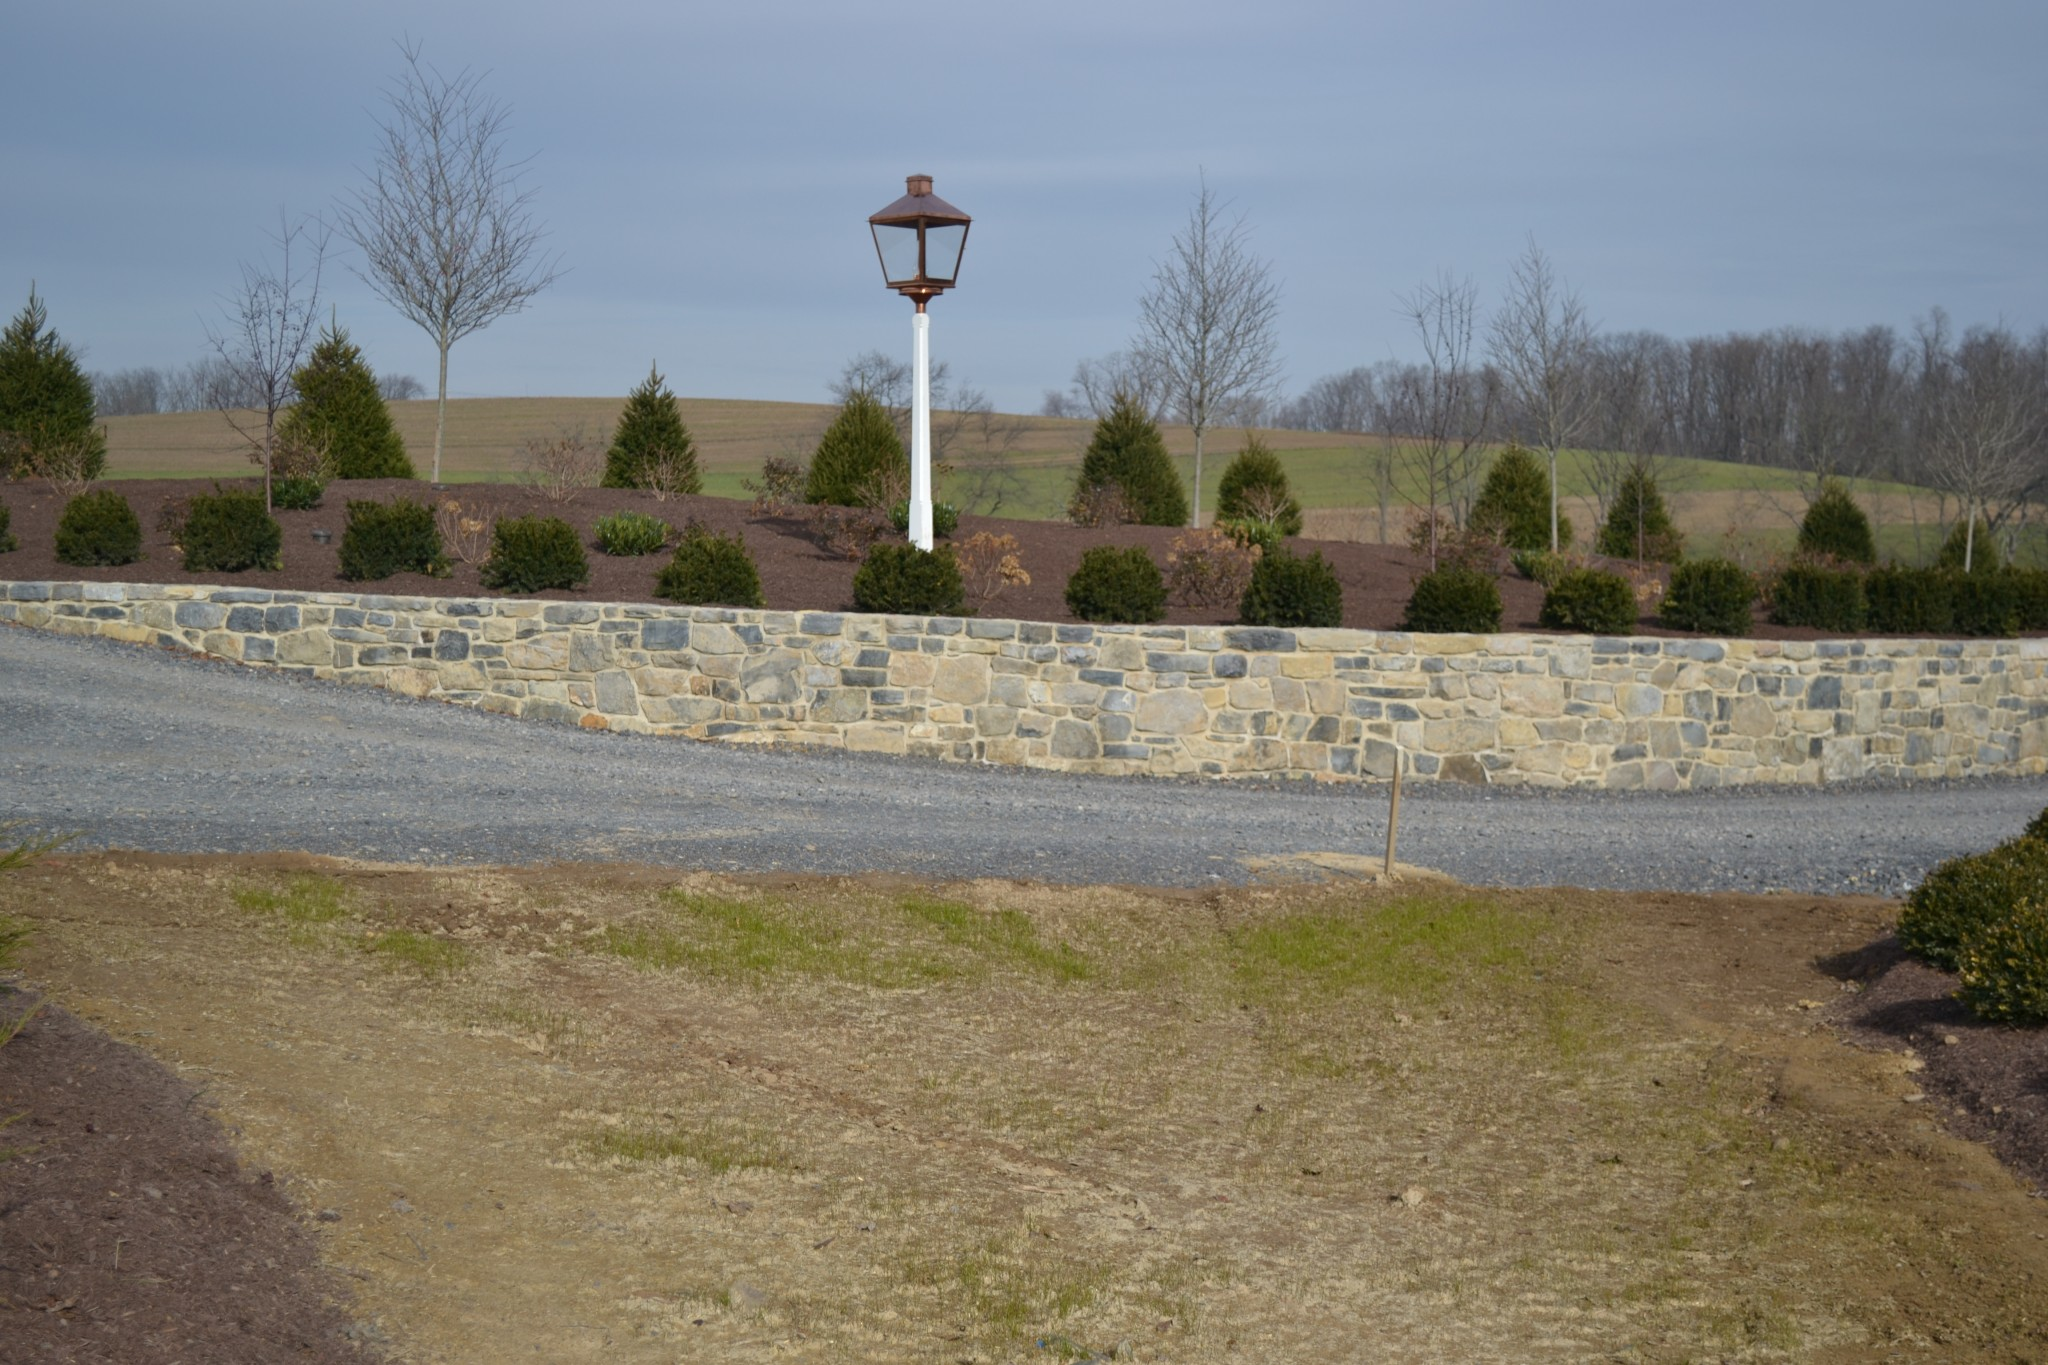 A retaining wall at the Baylor House in Lewisburg, Pennsylvania